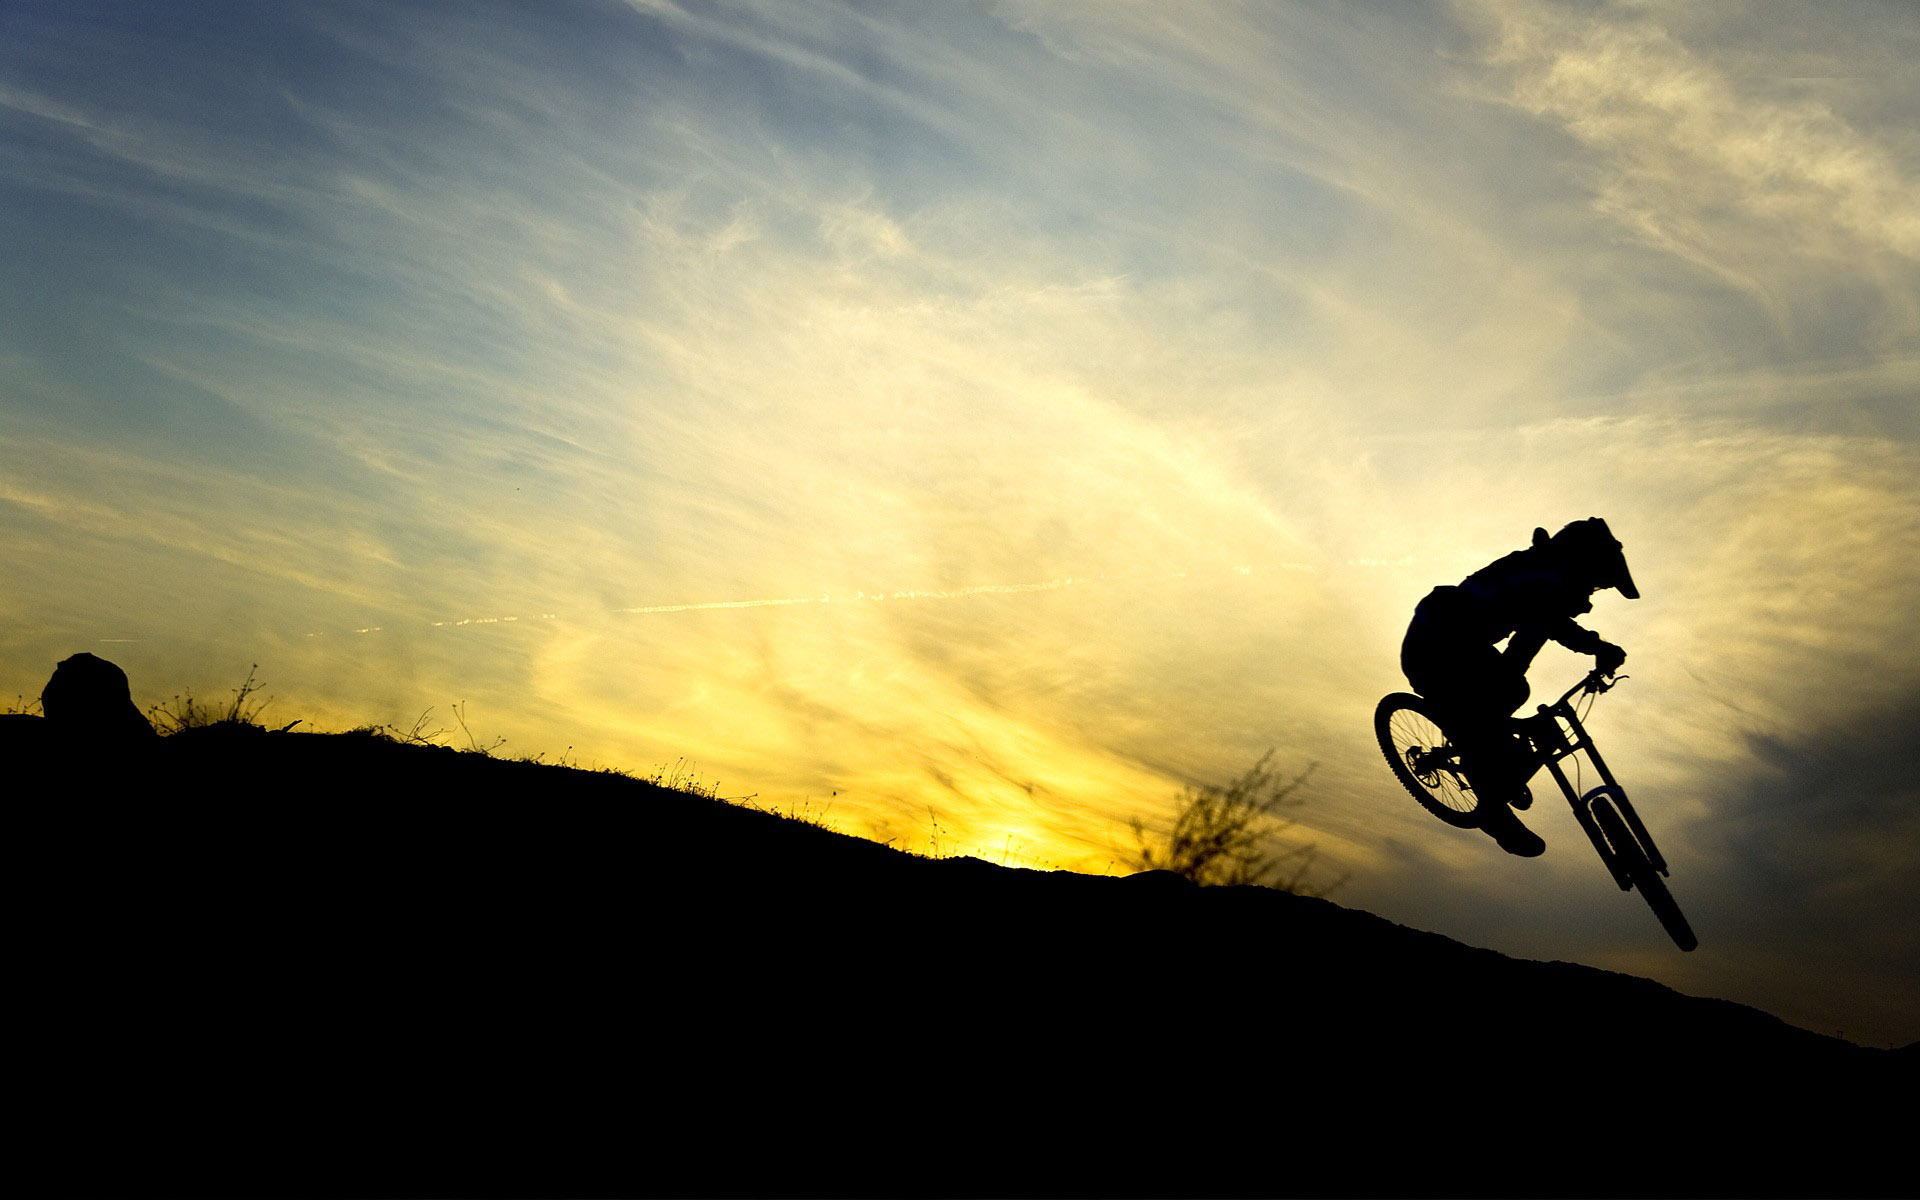 High Resolution Wallpapers Free Download: Downhill Wallpapers High Quality